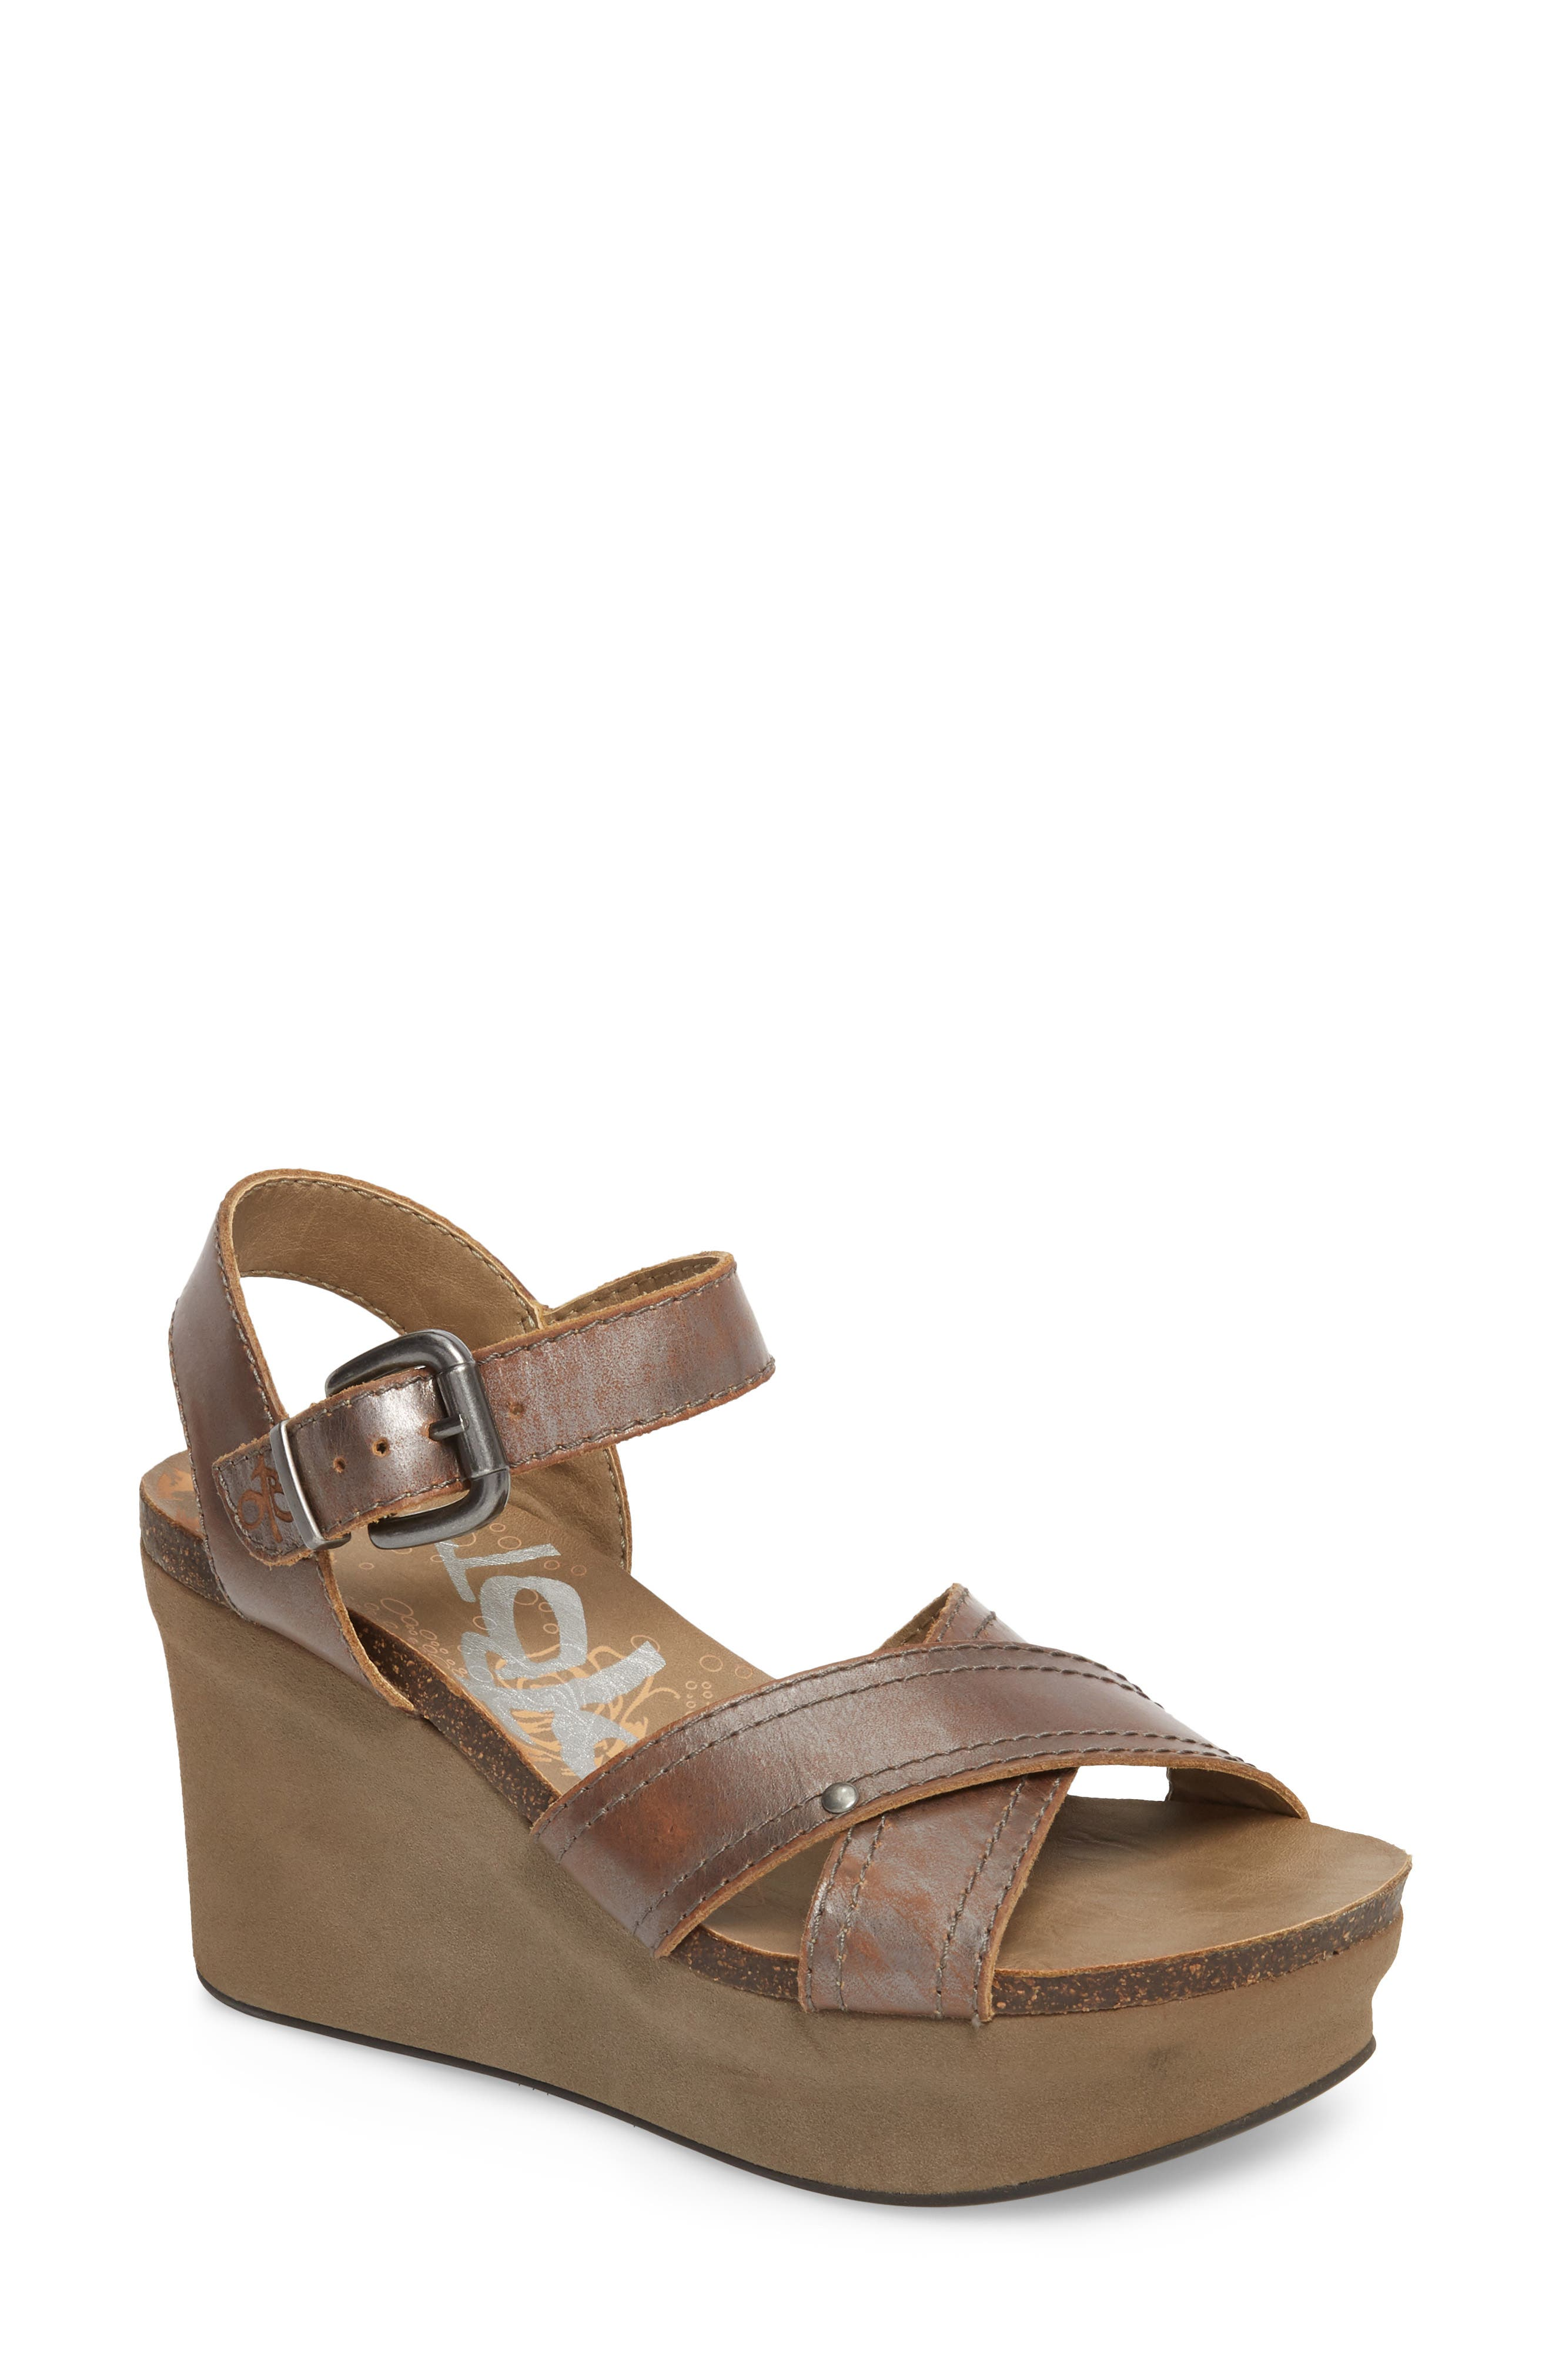 Bee Cave Wedge Sandal,                         Main,                         color, Pewter Leather